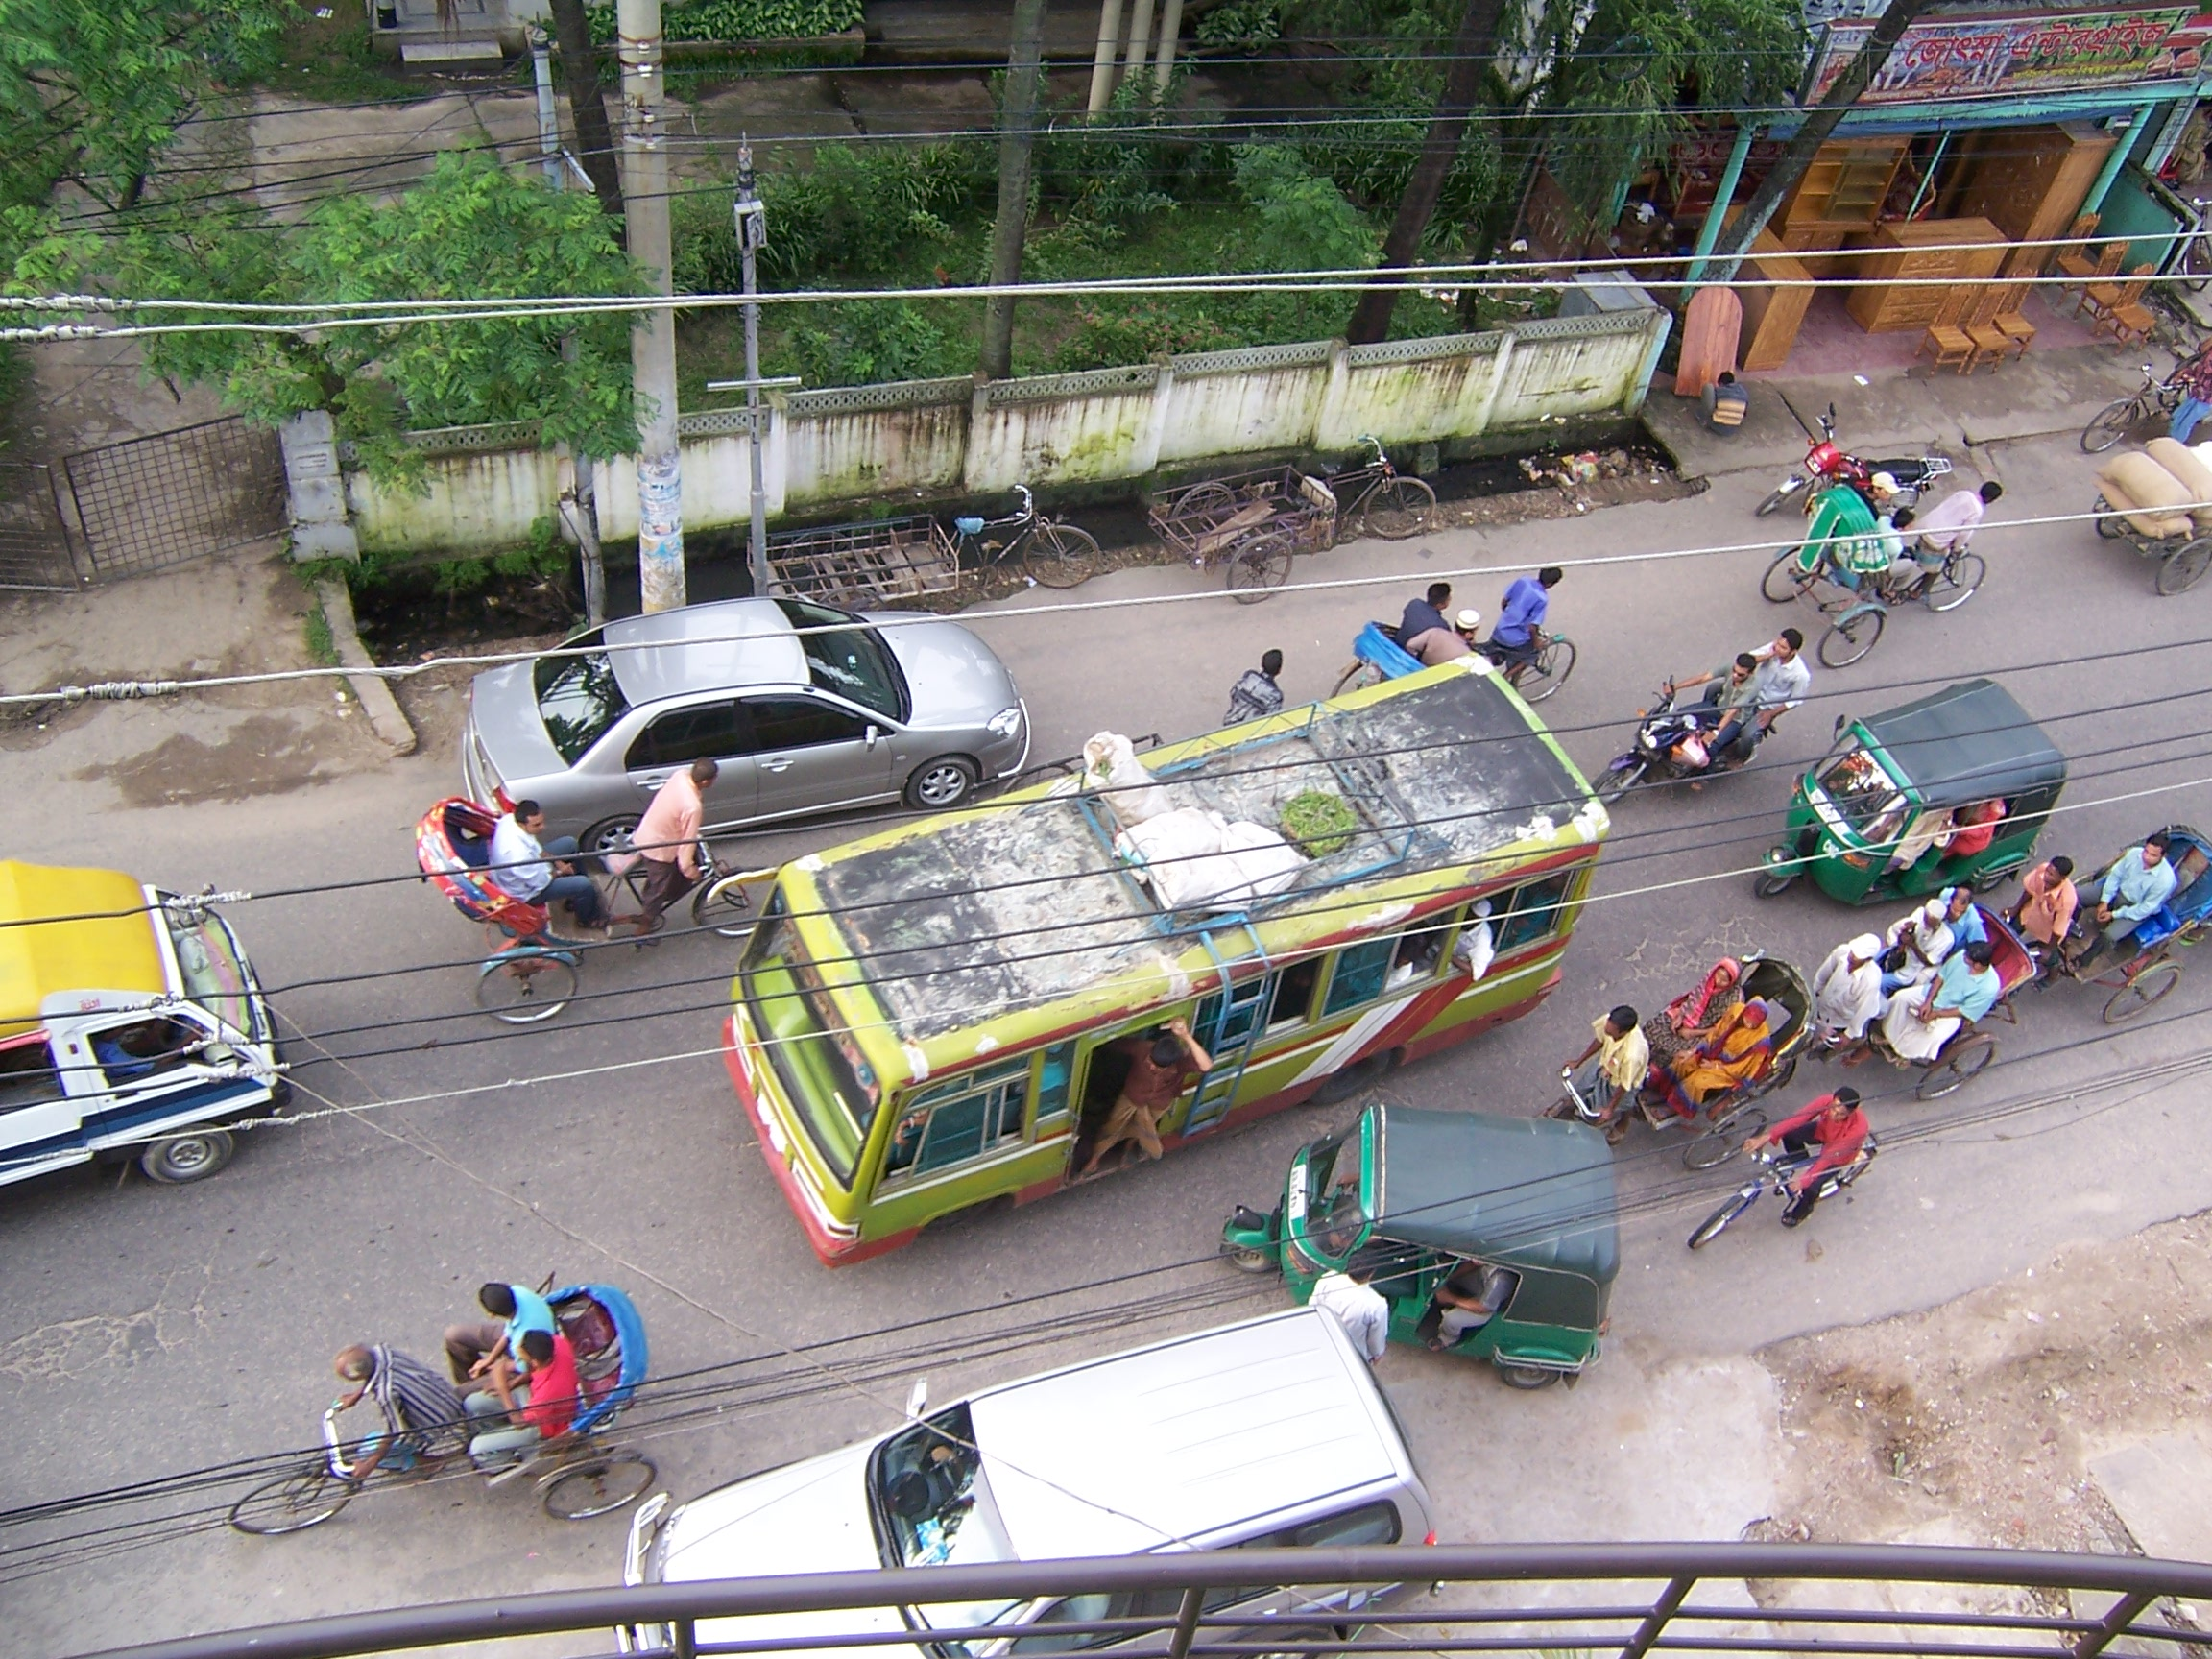 Bikes, carts, cars, and busses fill the busy street